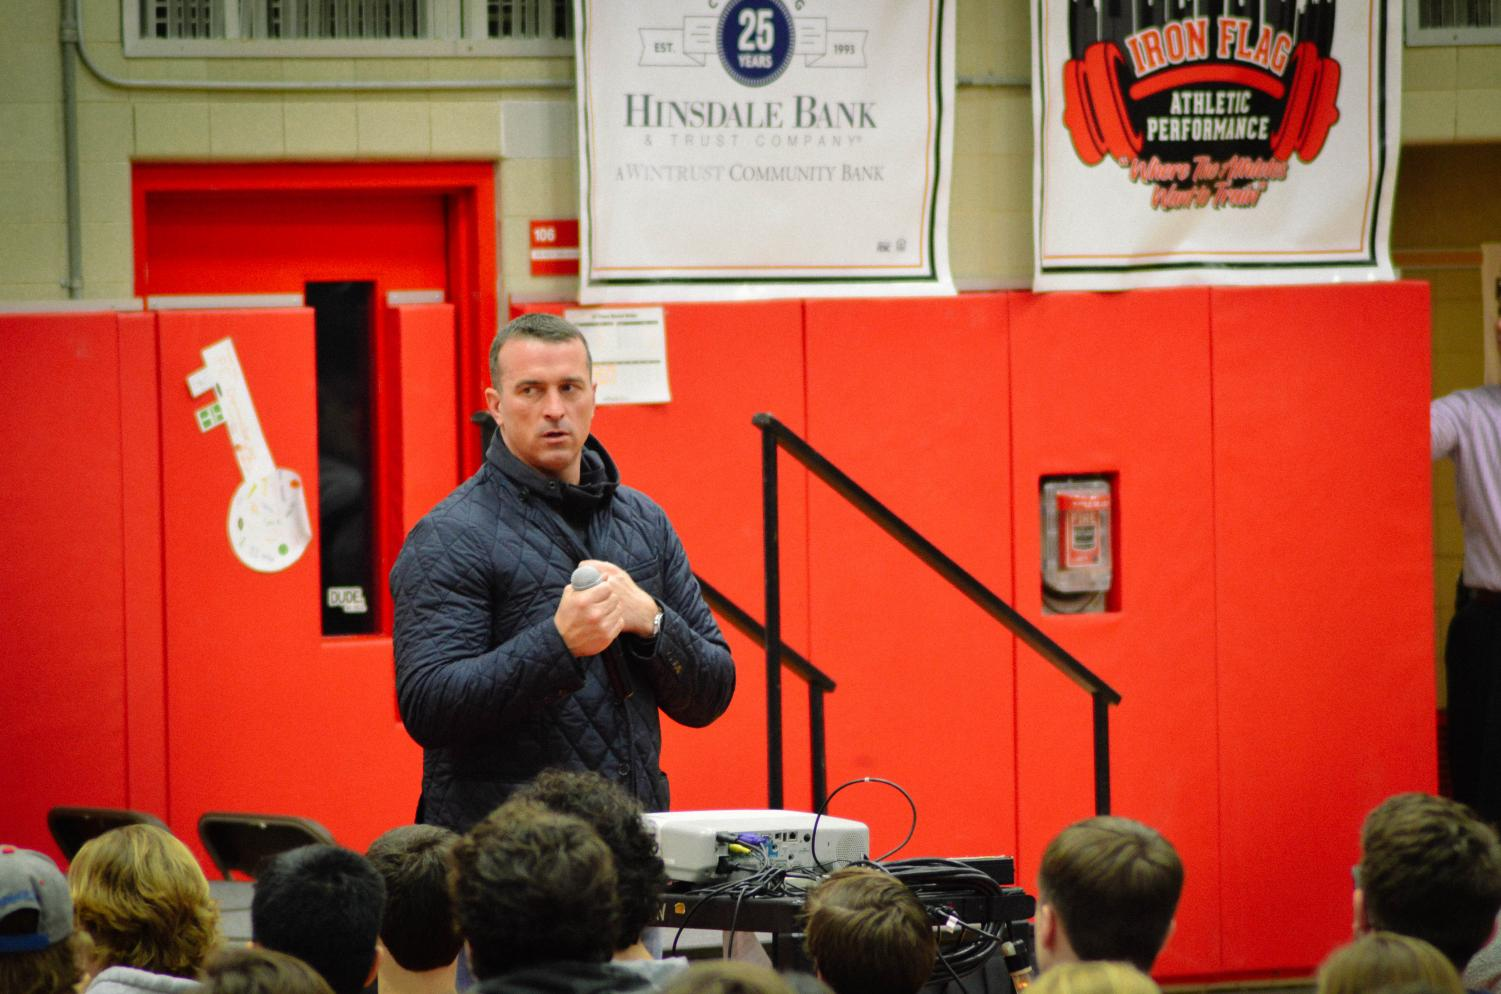 On Wednesday, Jan. 23, Chris Herren, former NBA player, spoke to all grade levels in the gymnasium about the causes and effects of his drug usage.